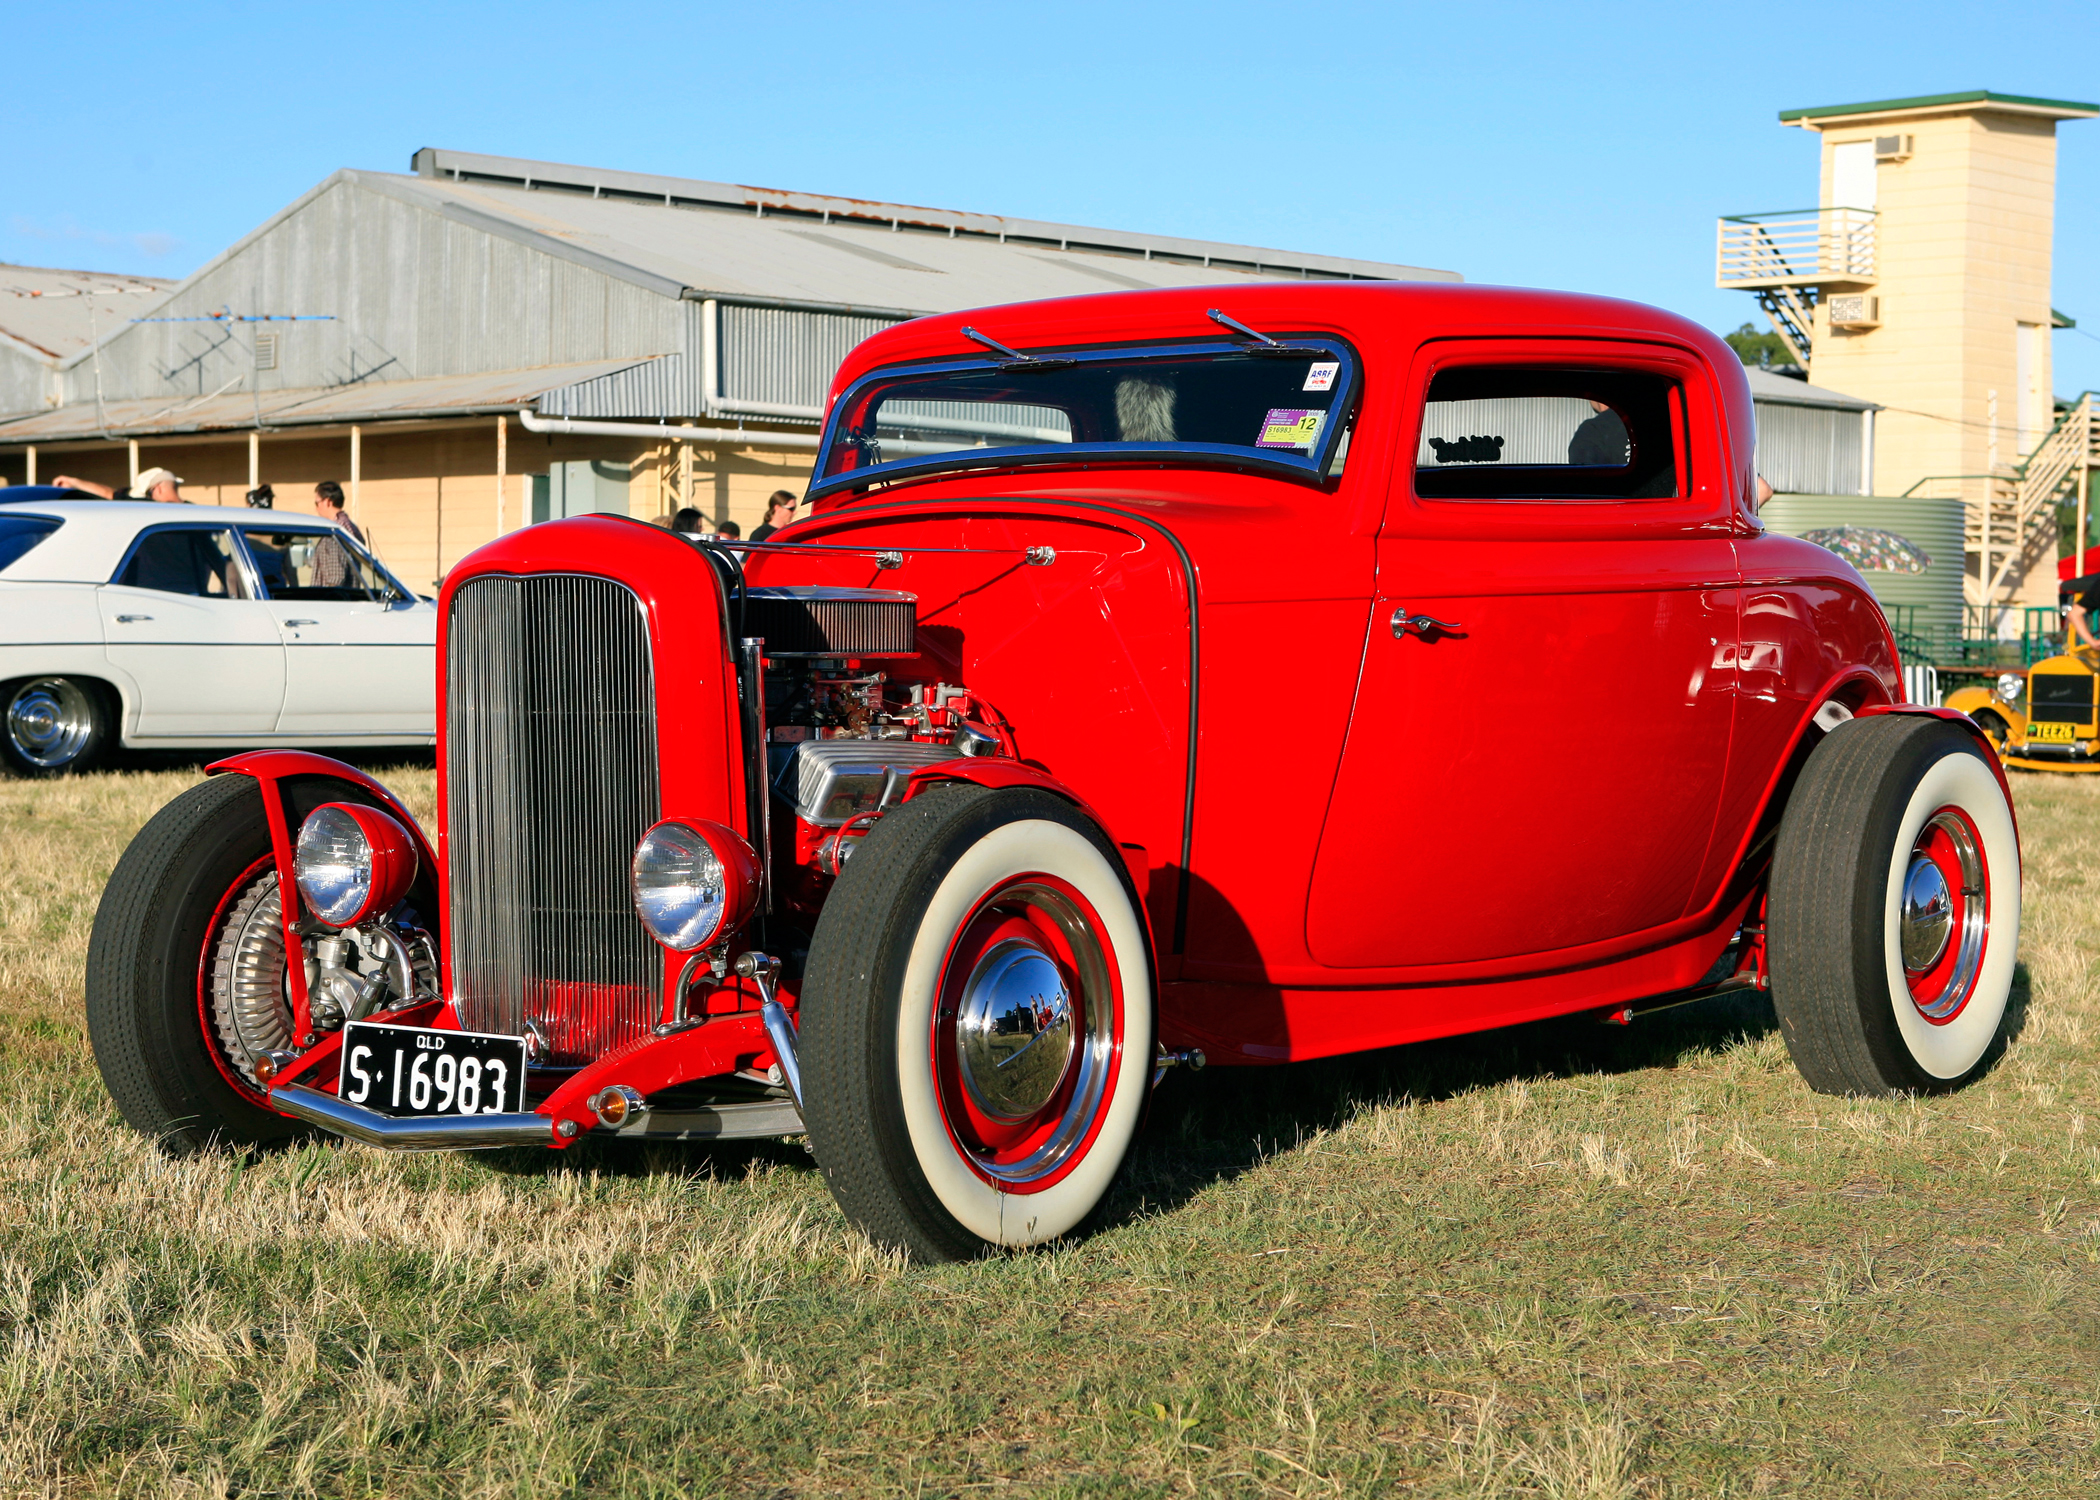 hot rods You'll find america's best hot rods in the links below.